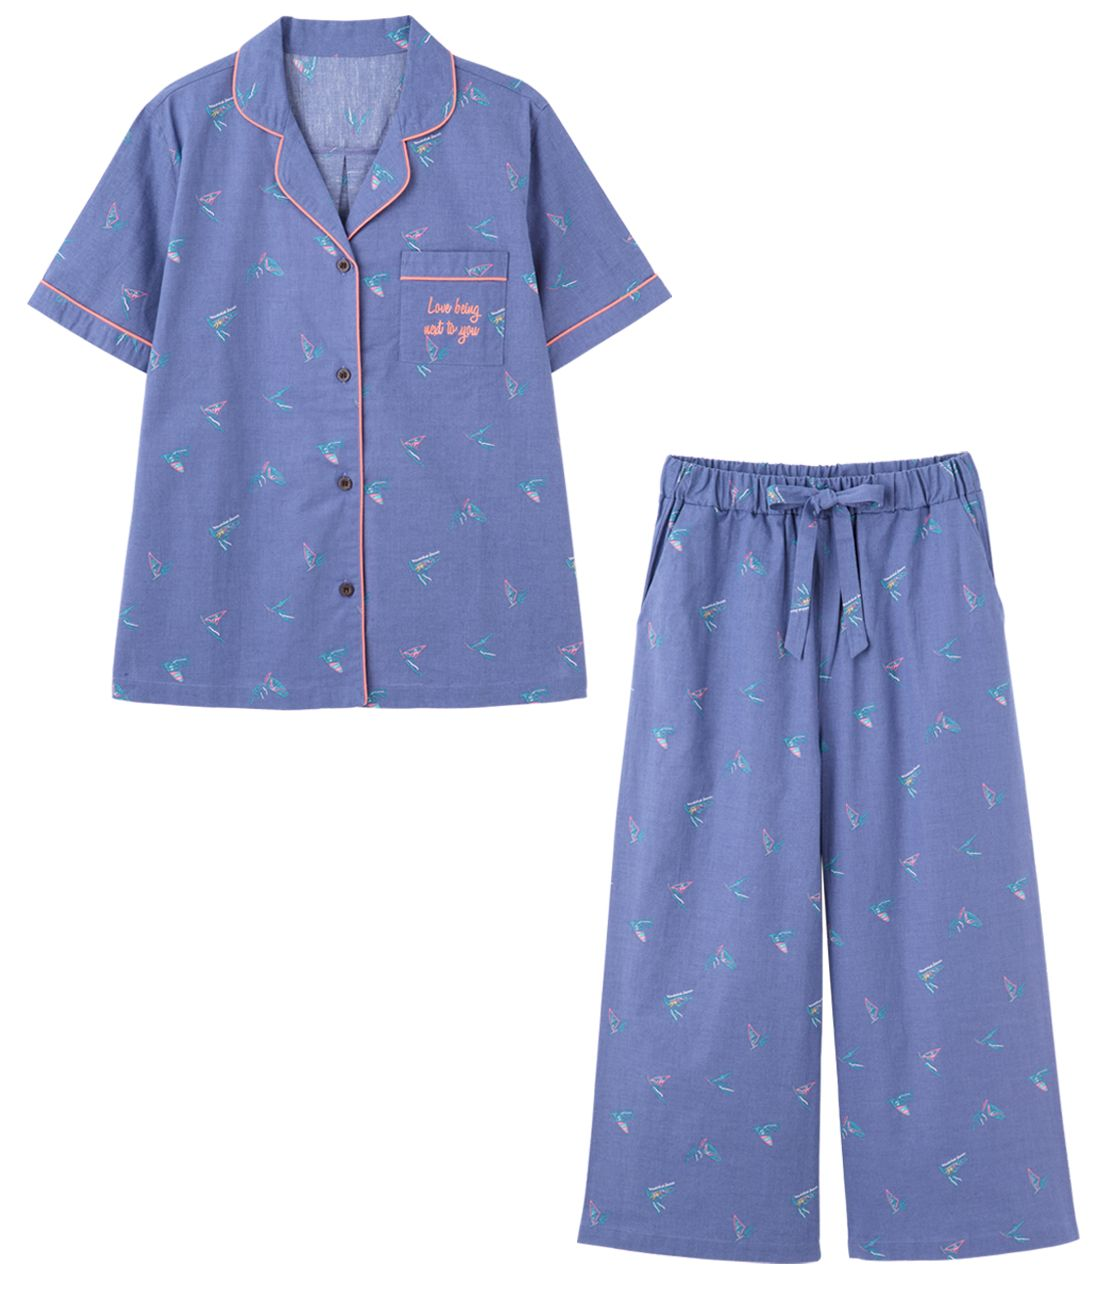 Cotton linen summer shirt pajamas